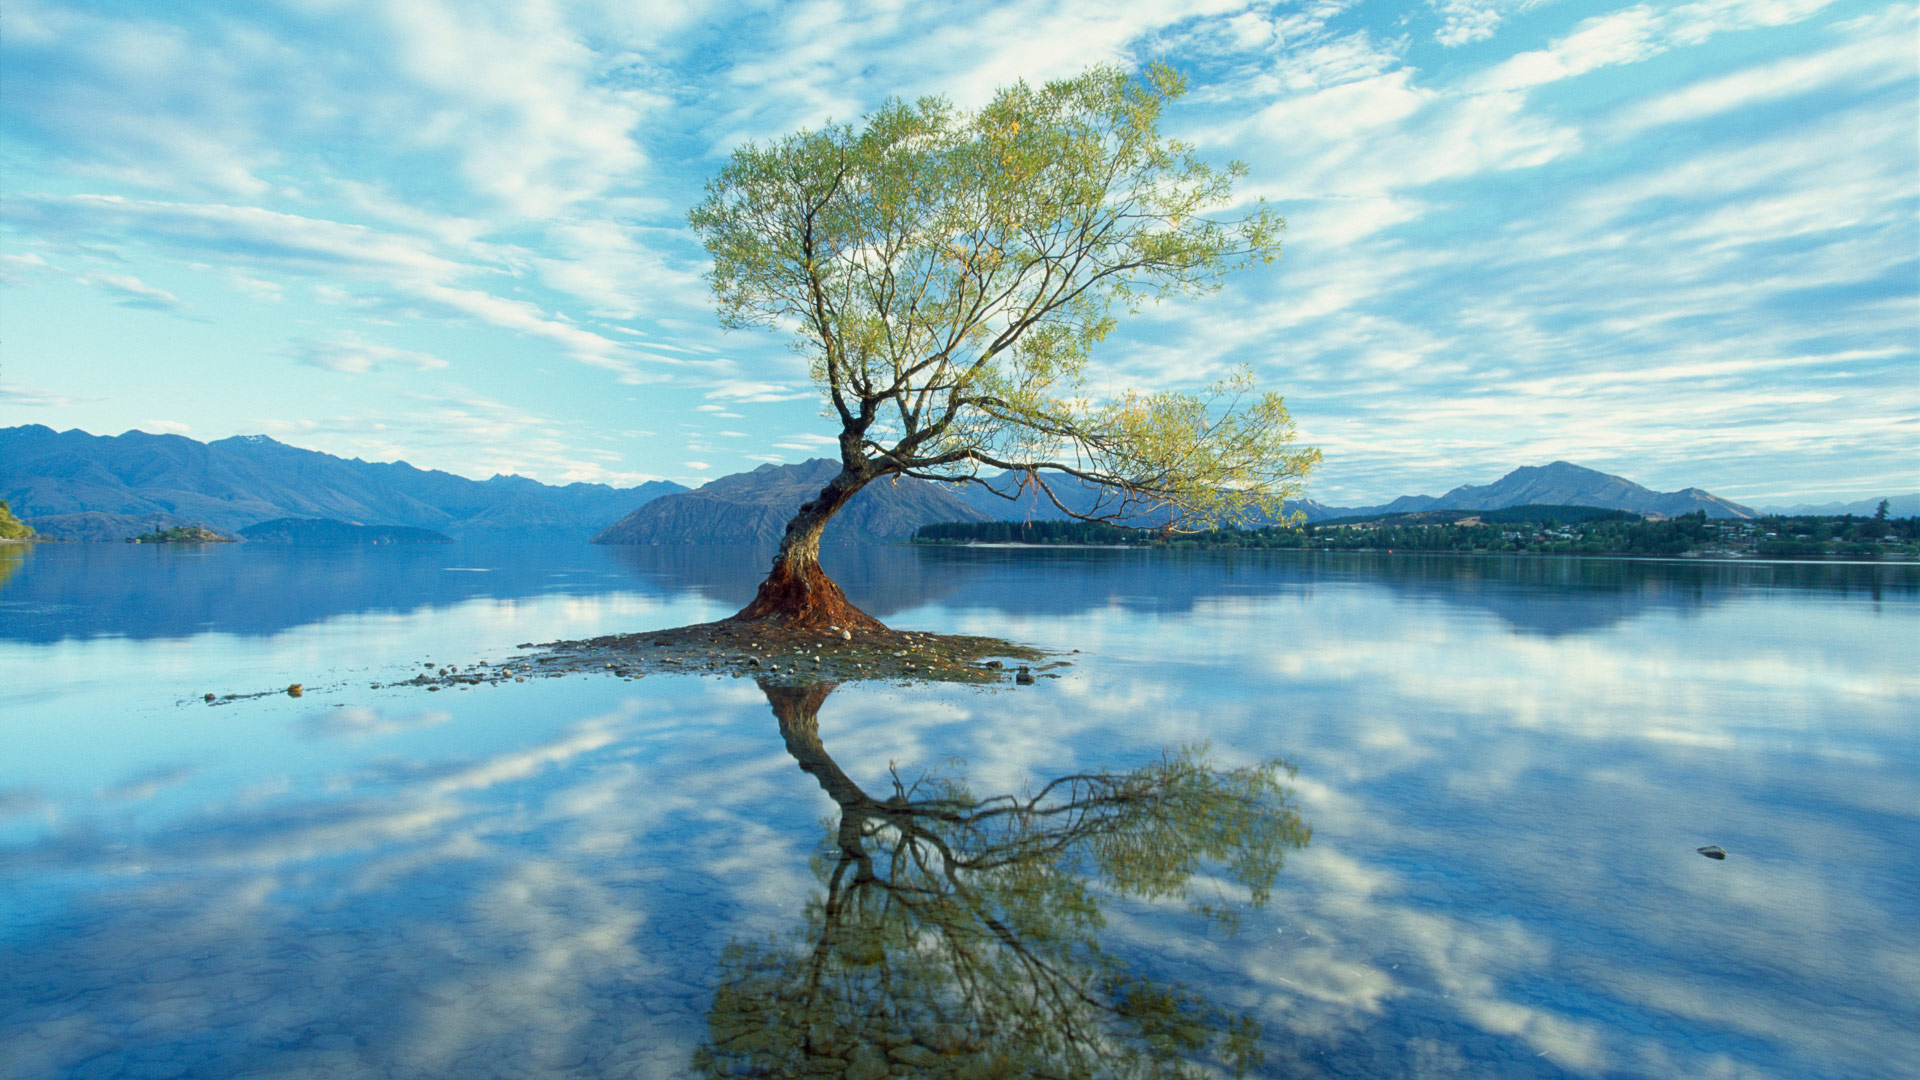 A partially underwater submerged tree in Lake Wanaka New Zealand 1920x1080